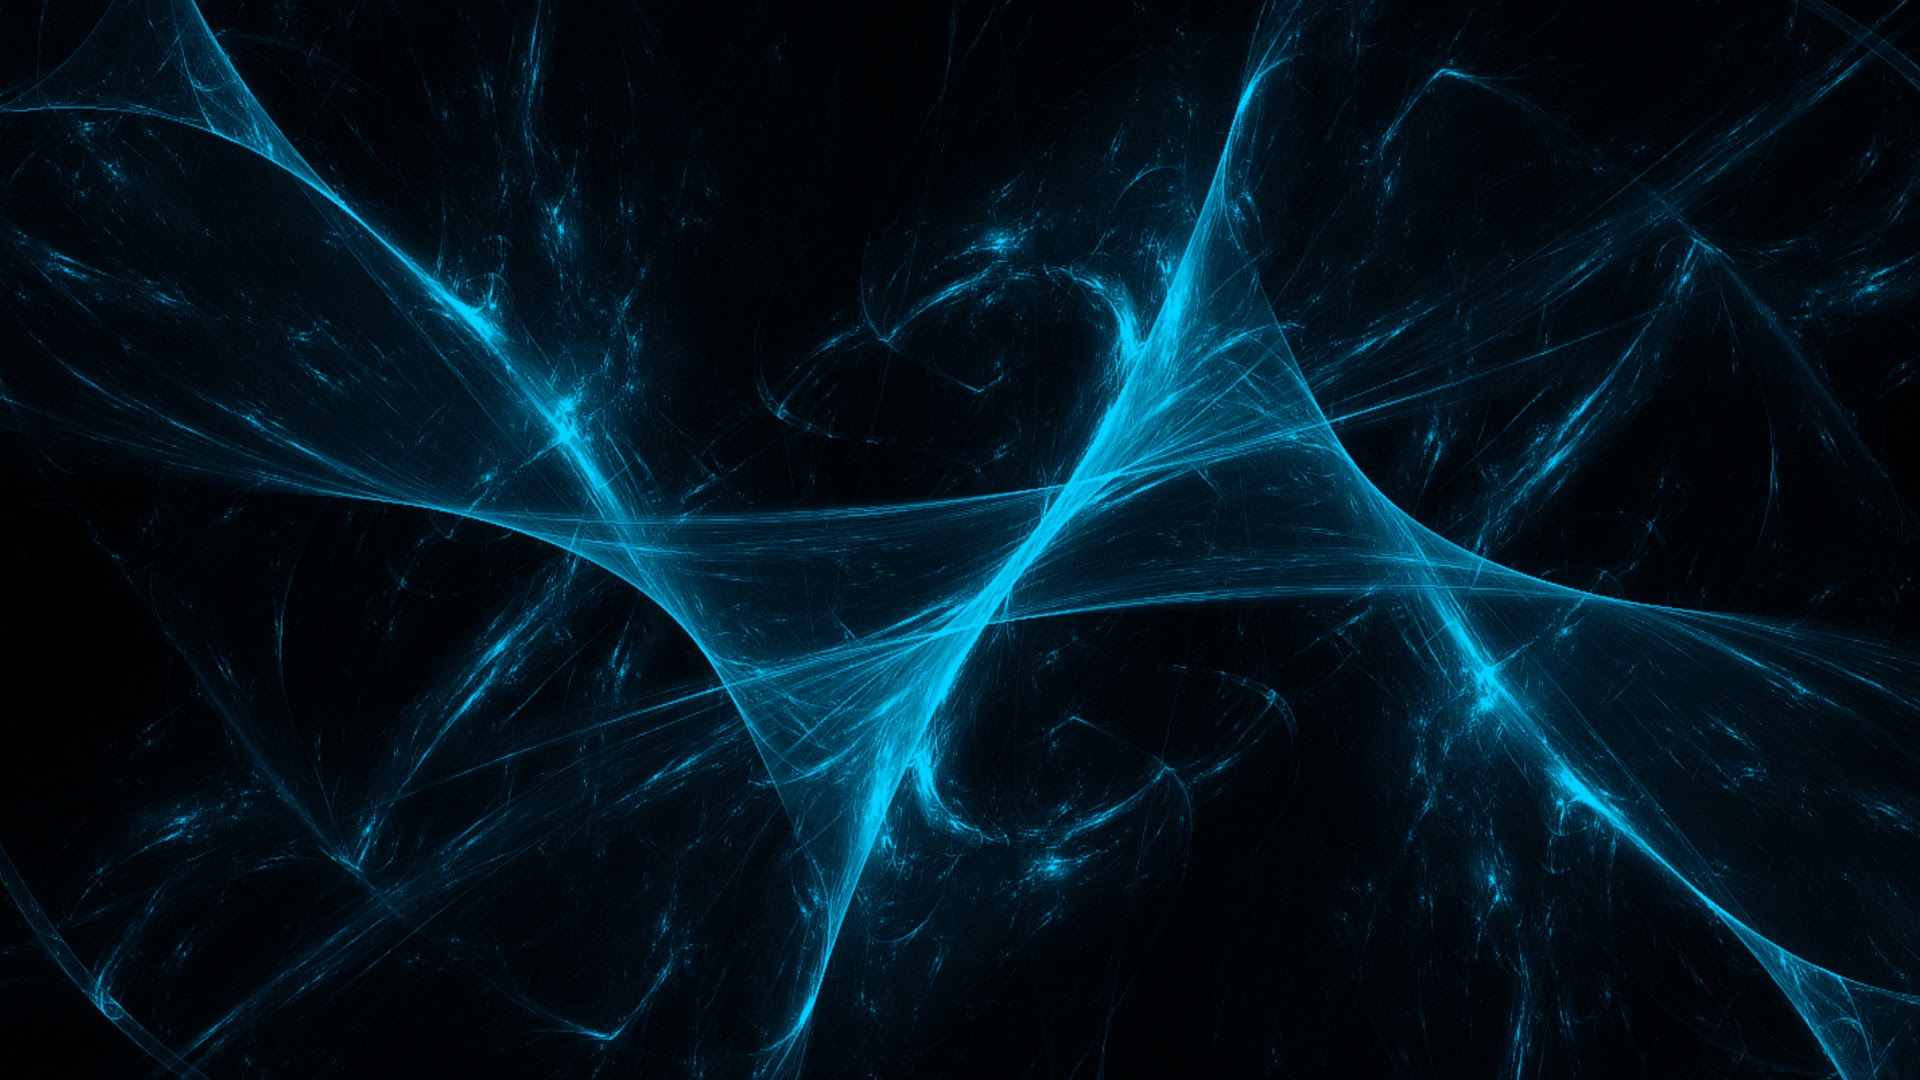 1920x1080 Abstract Desktop Pc And Mac Wallpaper 高画質 pc